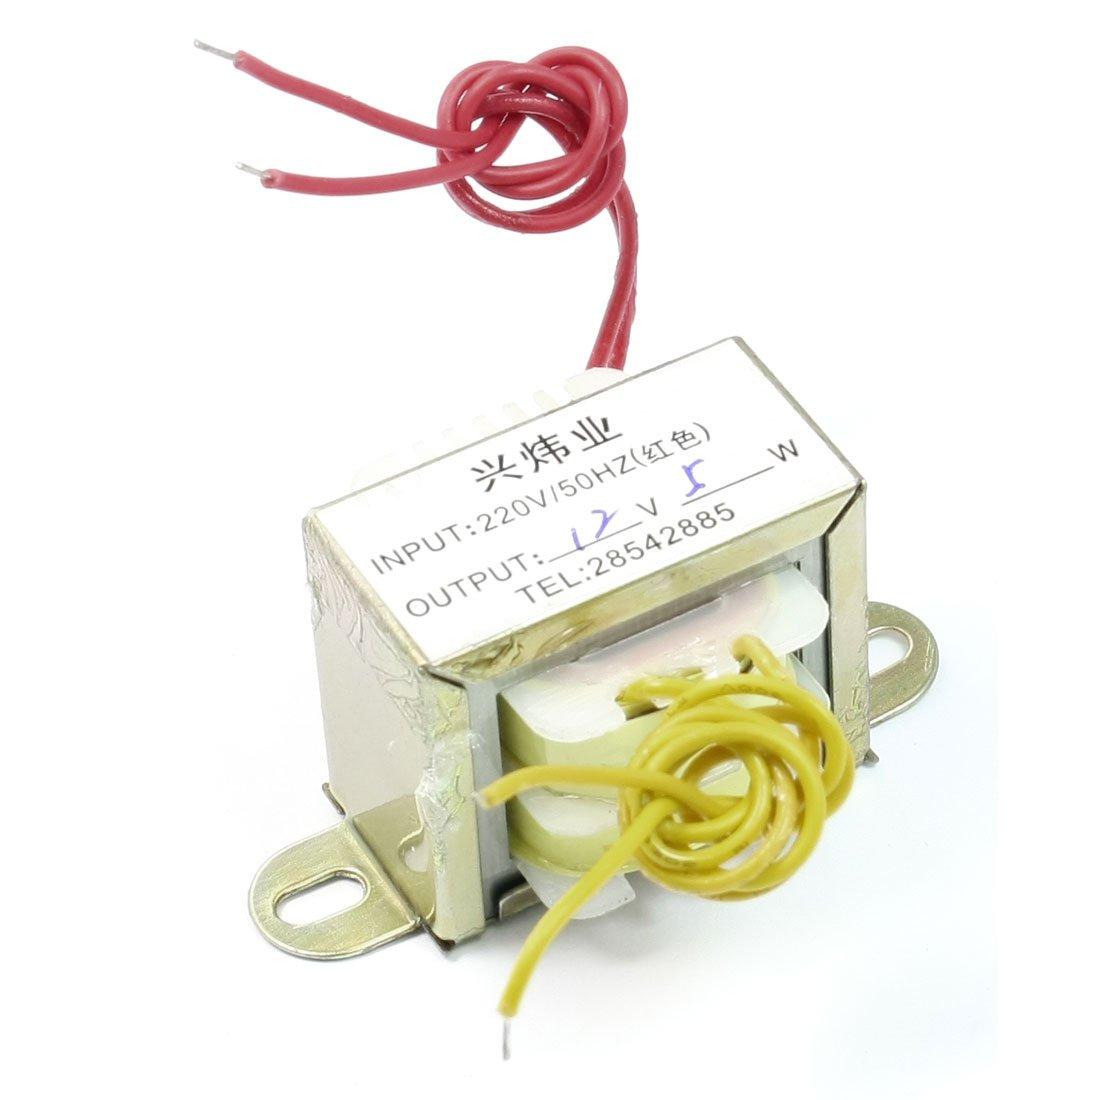 sourcingmap 220V 50Hz Single Phase EI Core Power Transformer 12V 5W Output w Cable a13070100ux0421